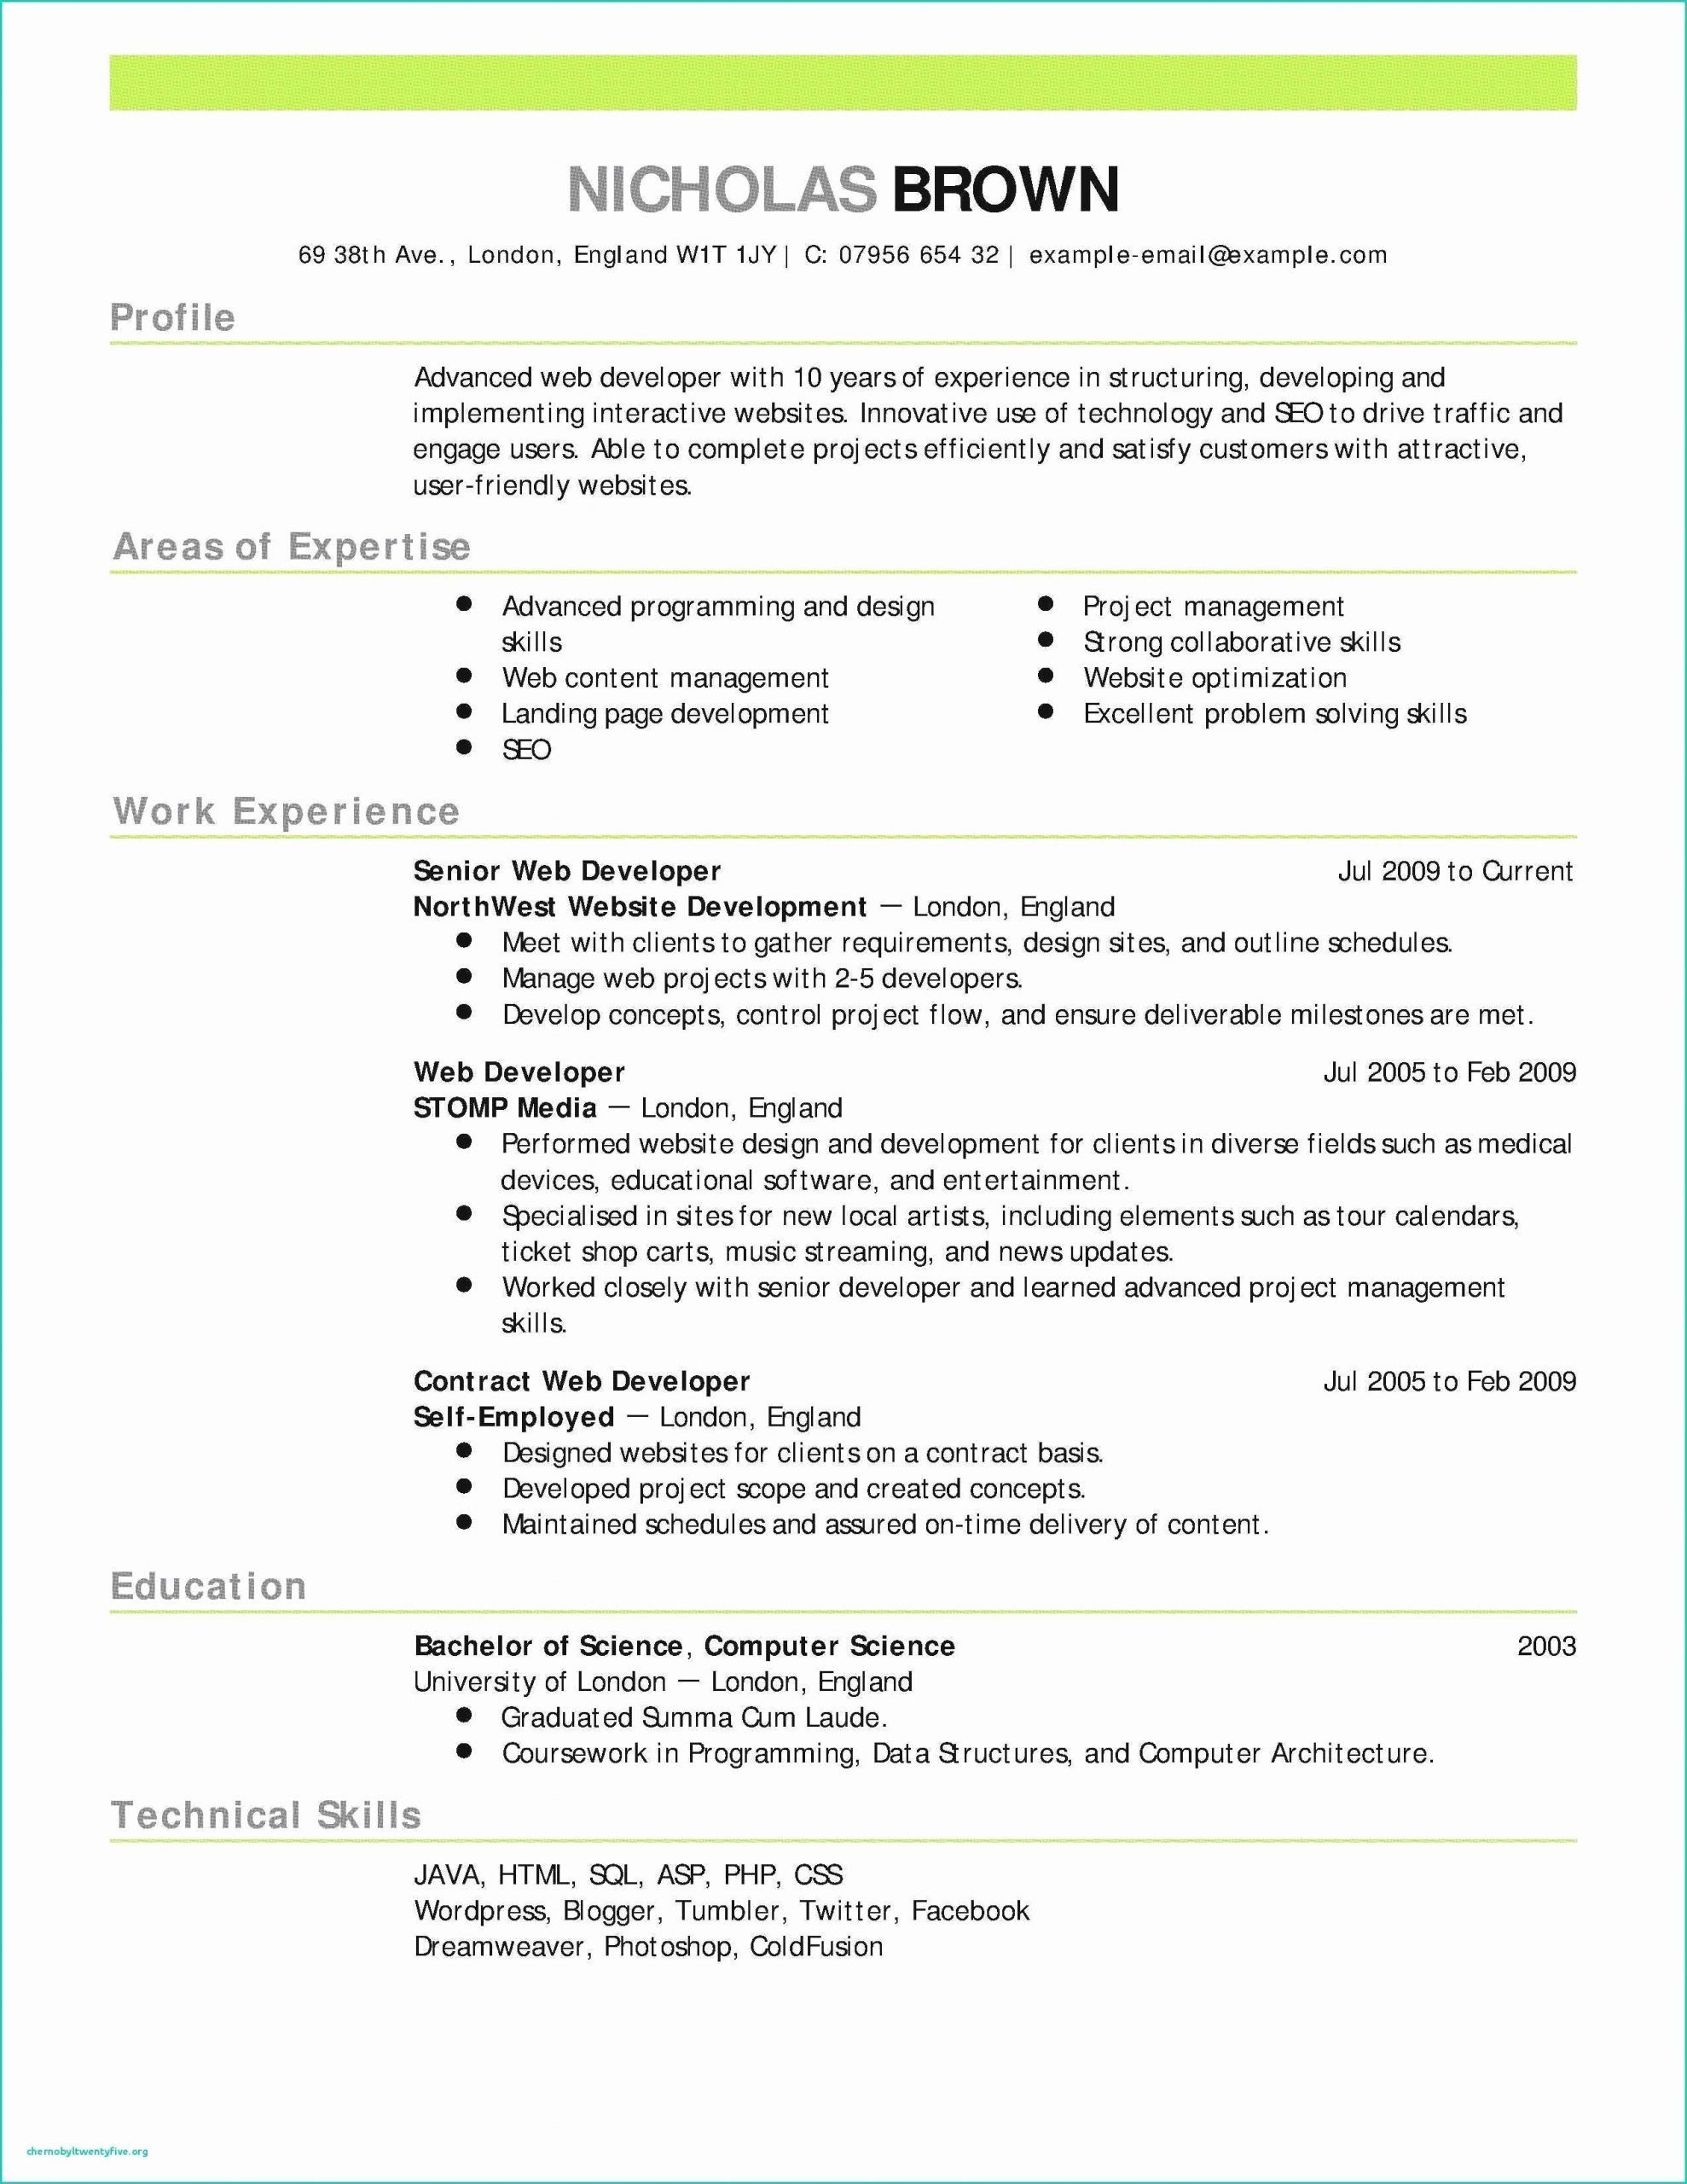 Computer Science Resume With No Experience Printable Resume Template Teaching Resume Job Resume Examples Project Manager Resume